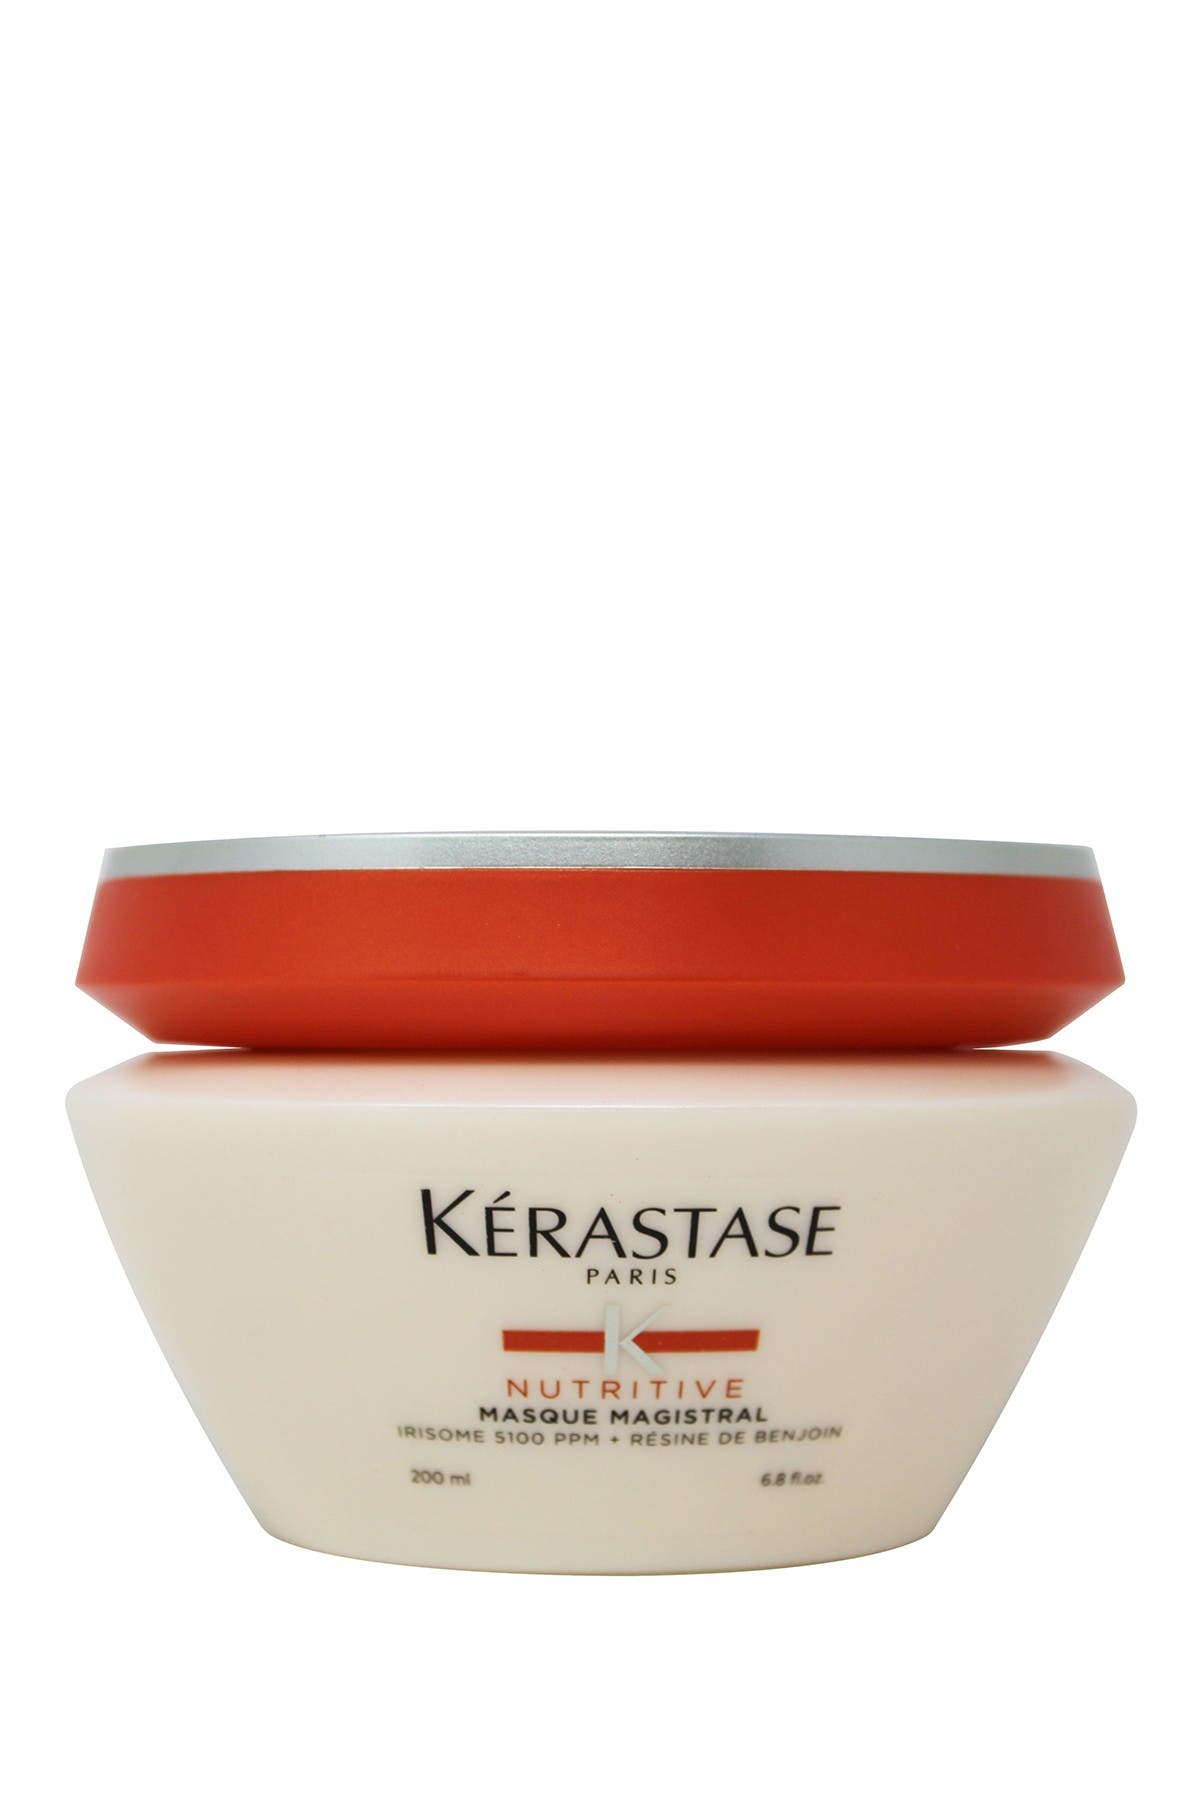 Image of KERASTASE Nutritive Masque Magistral Hair Mask - 6.8 fl. oz.